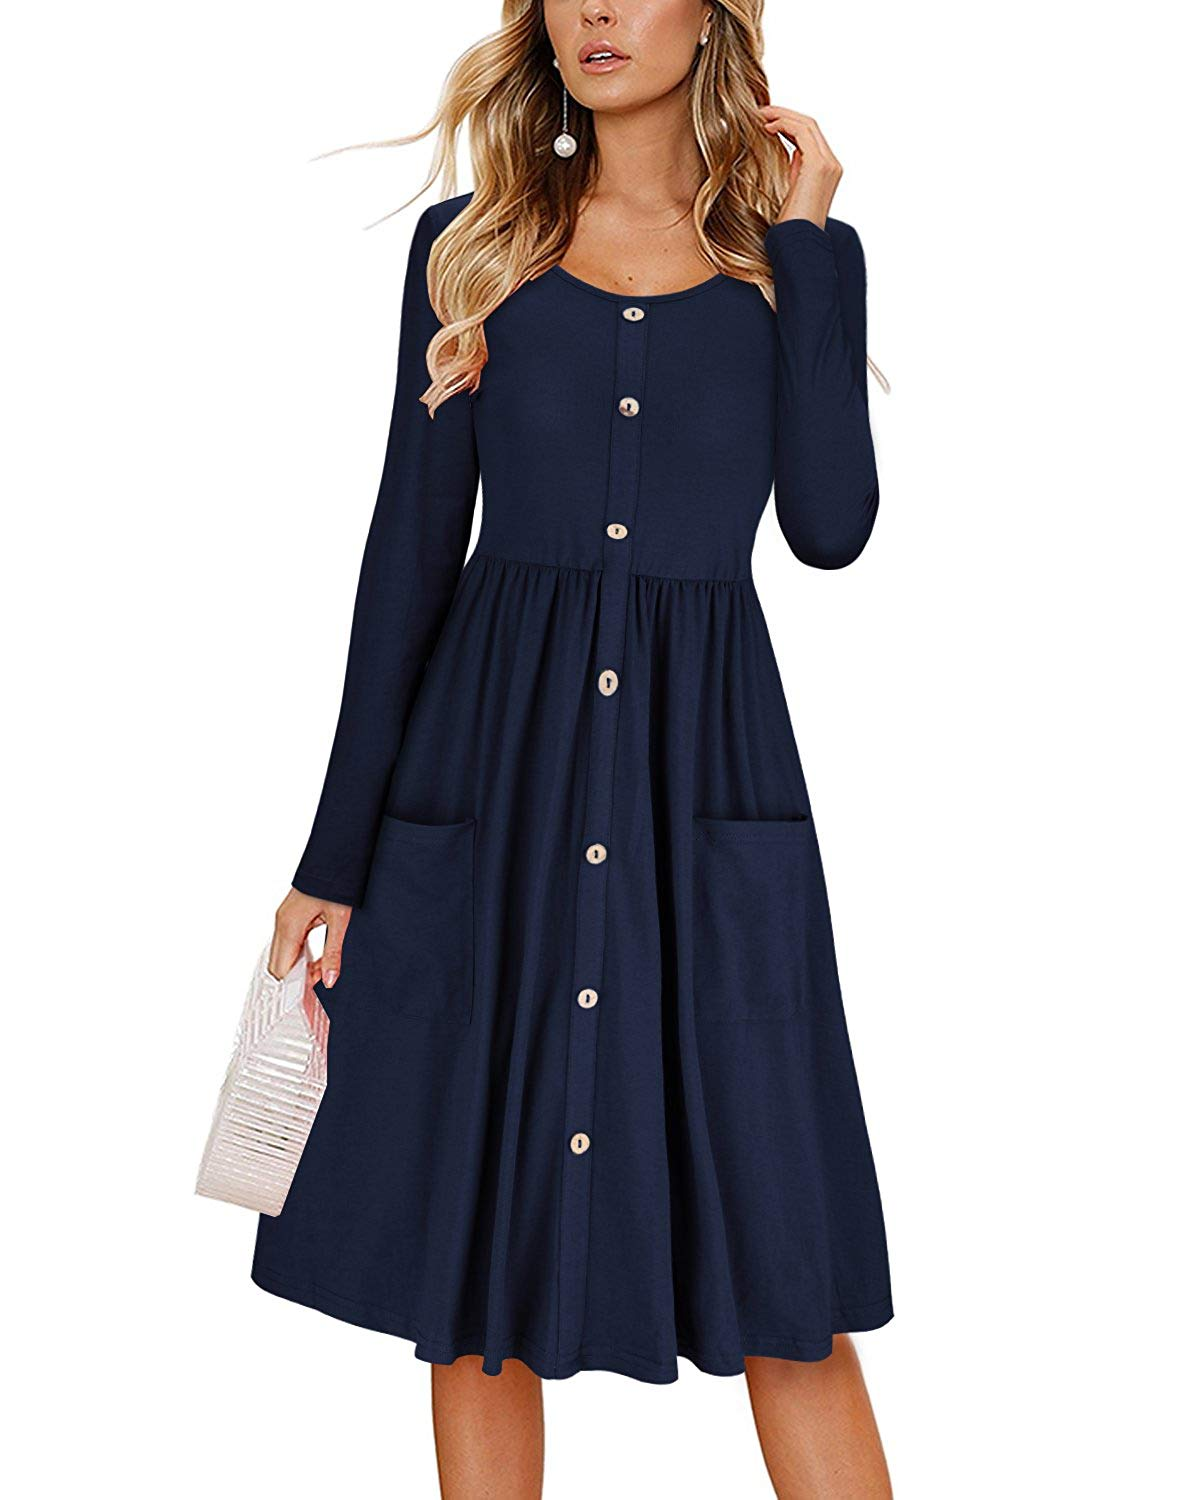 DAILYHAUTE Women's dress NAVY / S Haute Edition Women's Long Sleeve Button Down Dress with Pockets